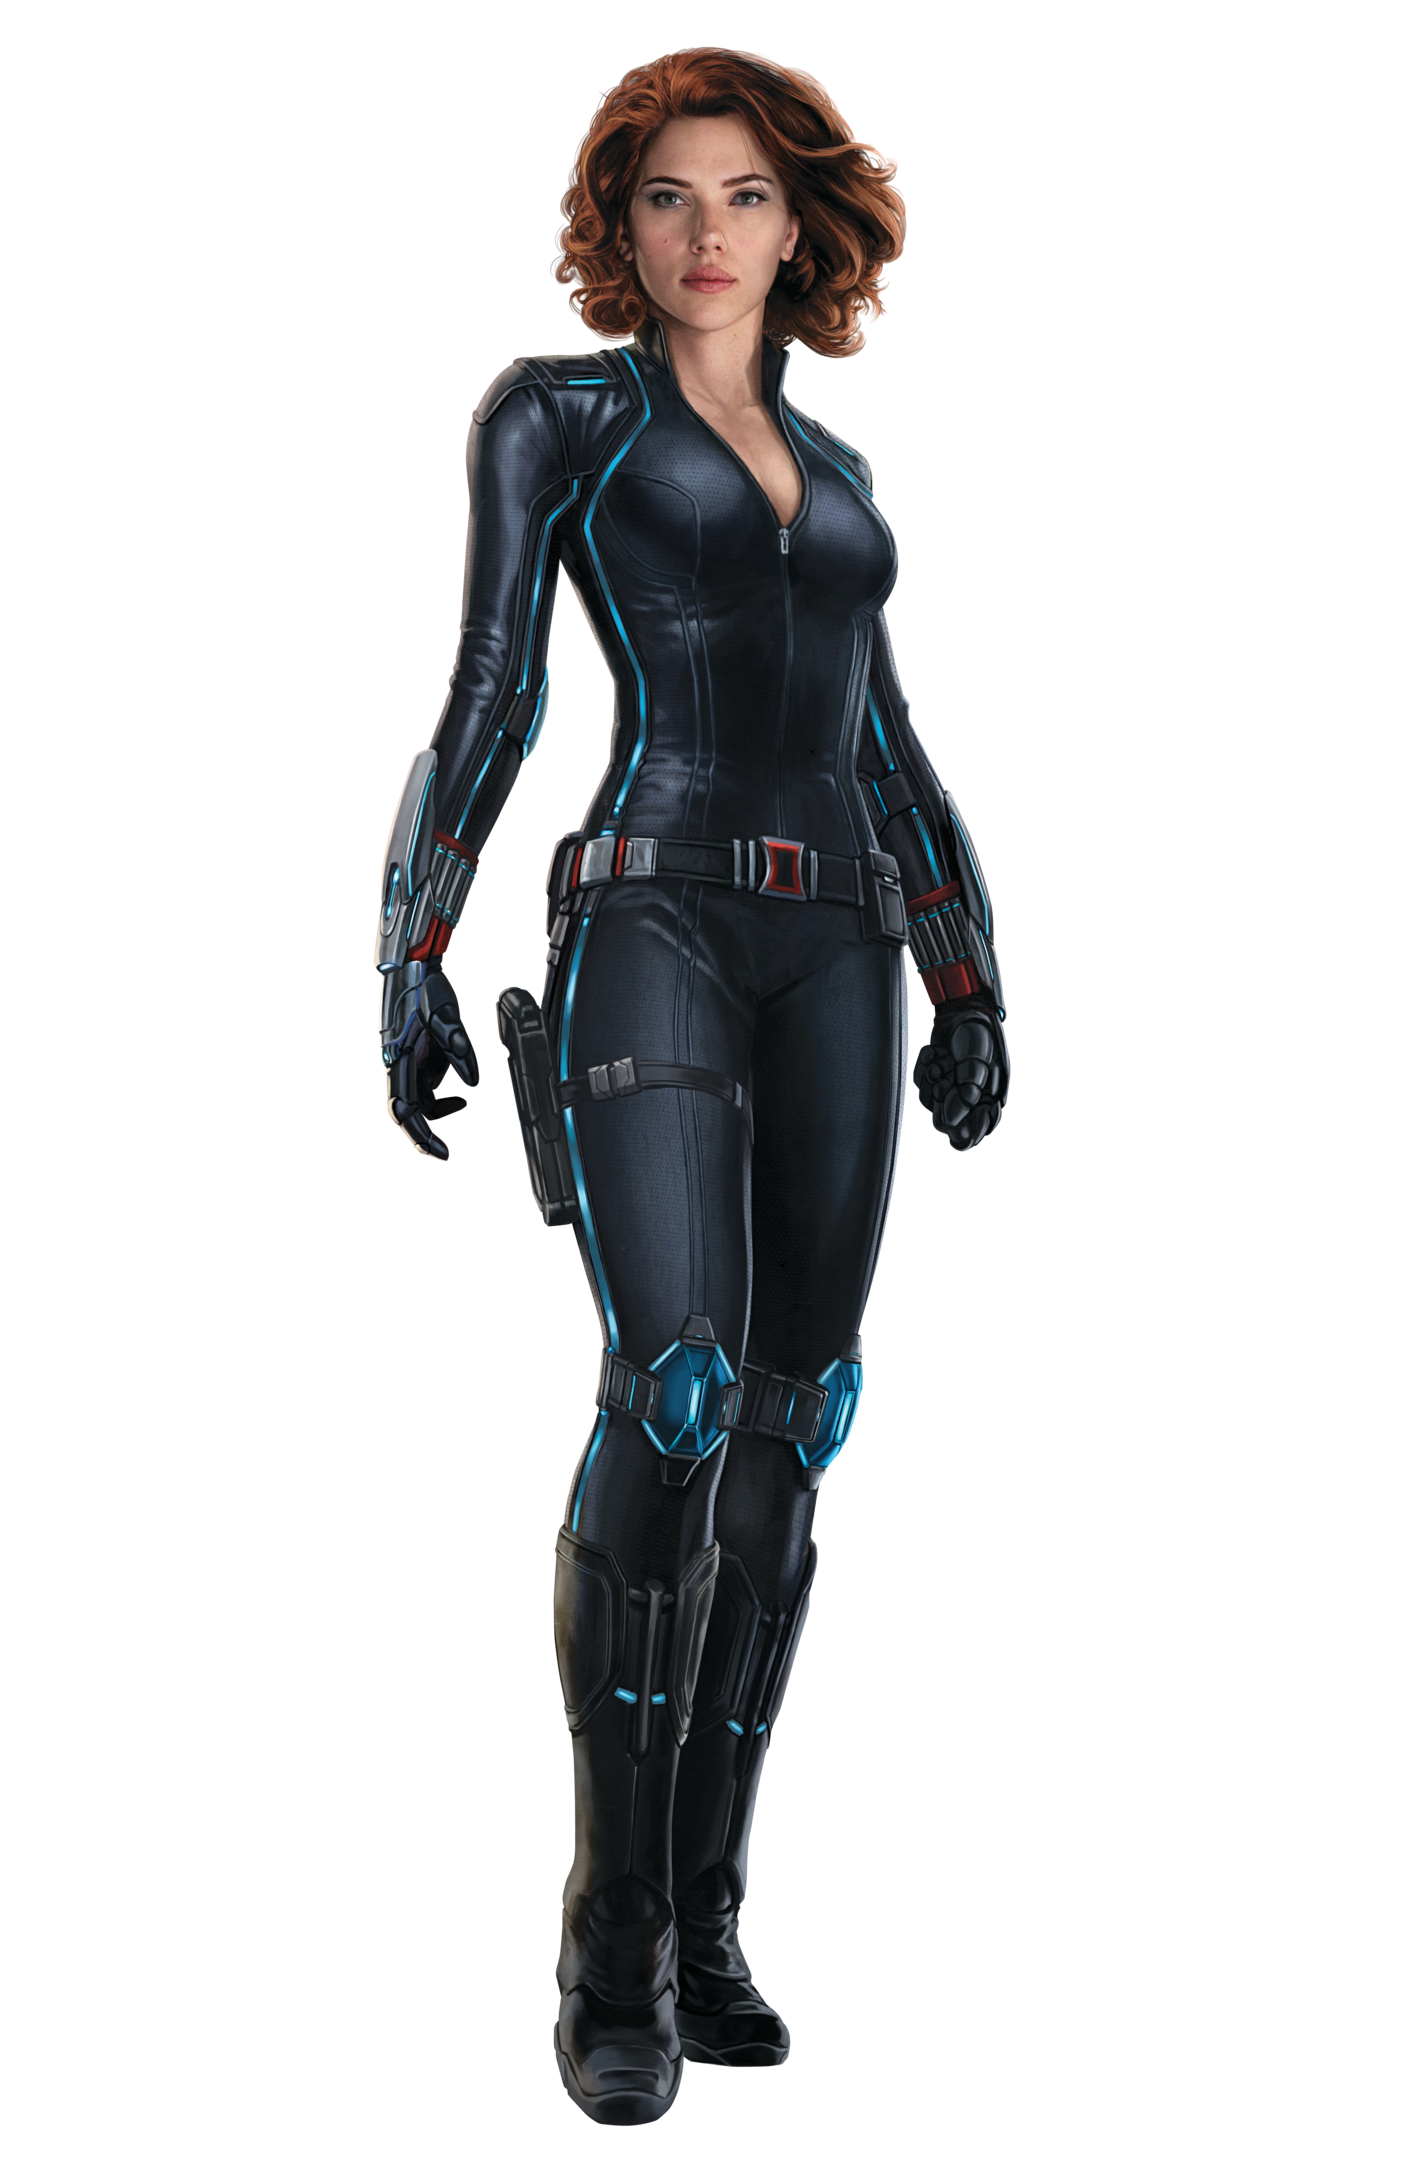 Http Vignette2 Wikia Nocookie Net Disney Infinity Images 7 78 Aou Black Png Revision Latest Cb 2015061601 In 2020 Black Widow Scarlett Black Widow Marvel Black Widow